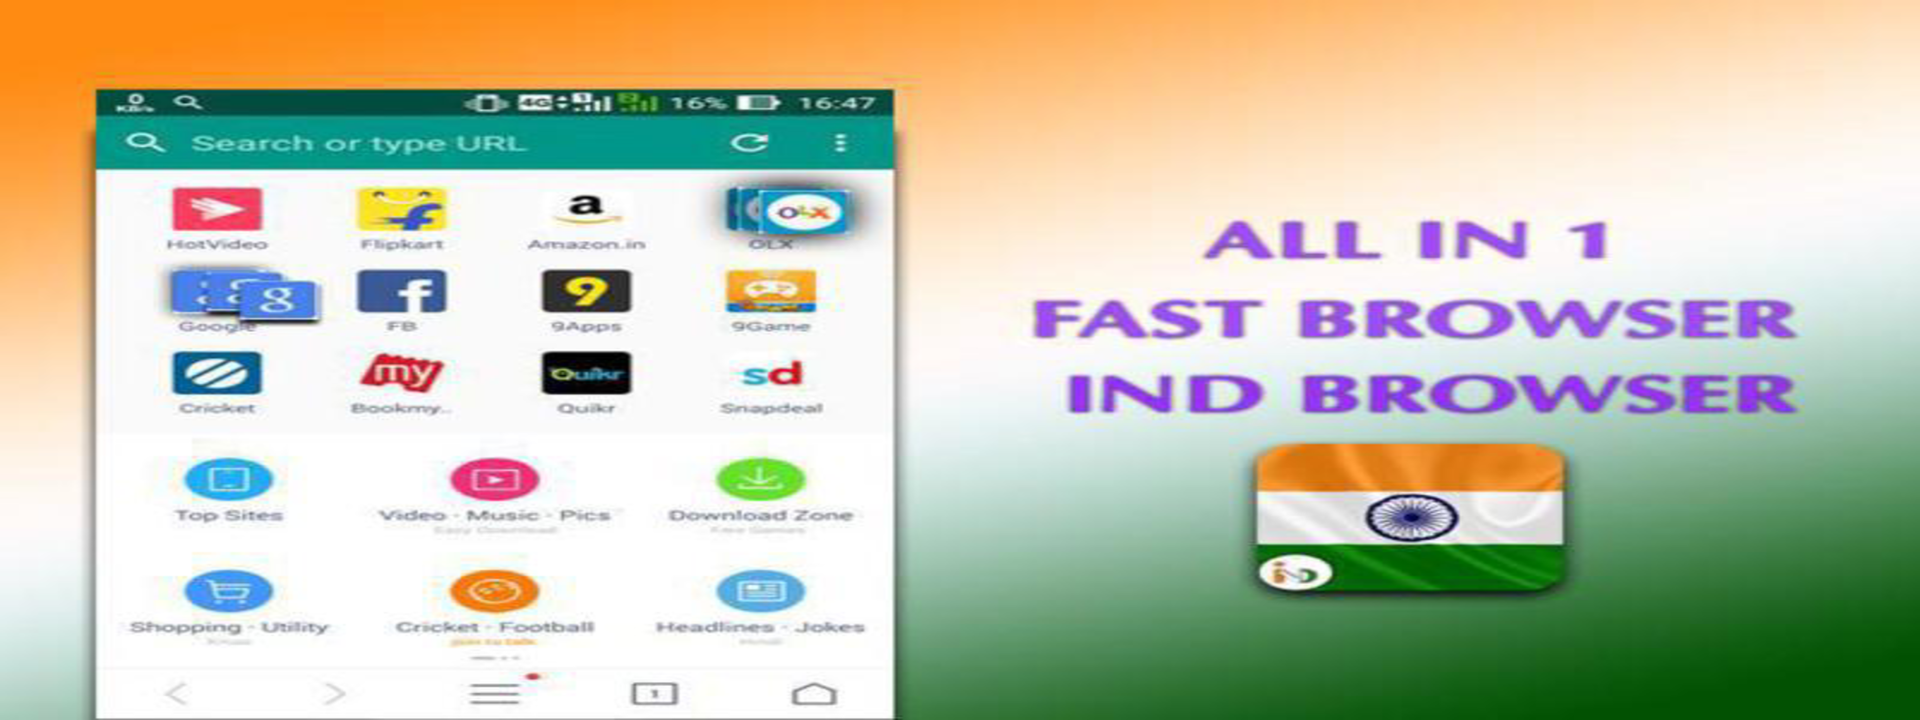 Amazon com: 4g Indian Browser - Fast Indian Browser: Appstore for